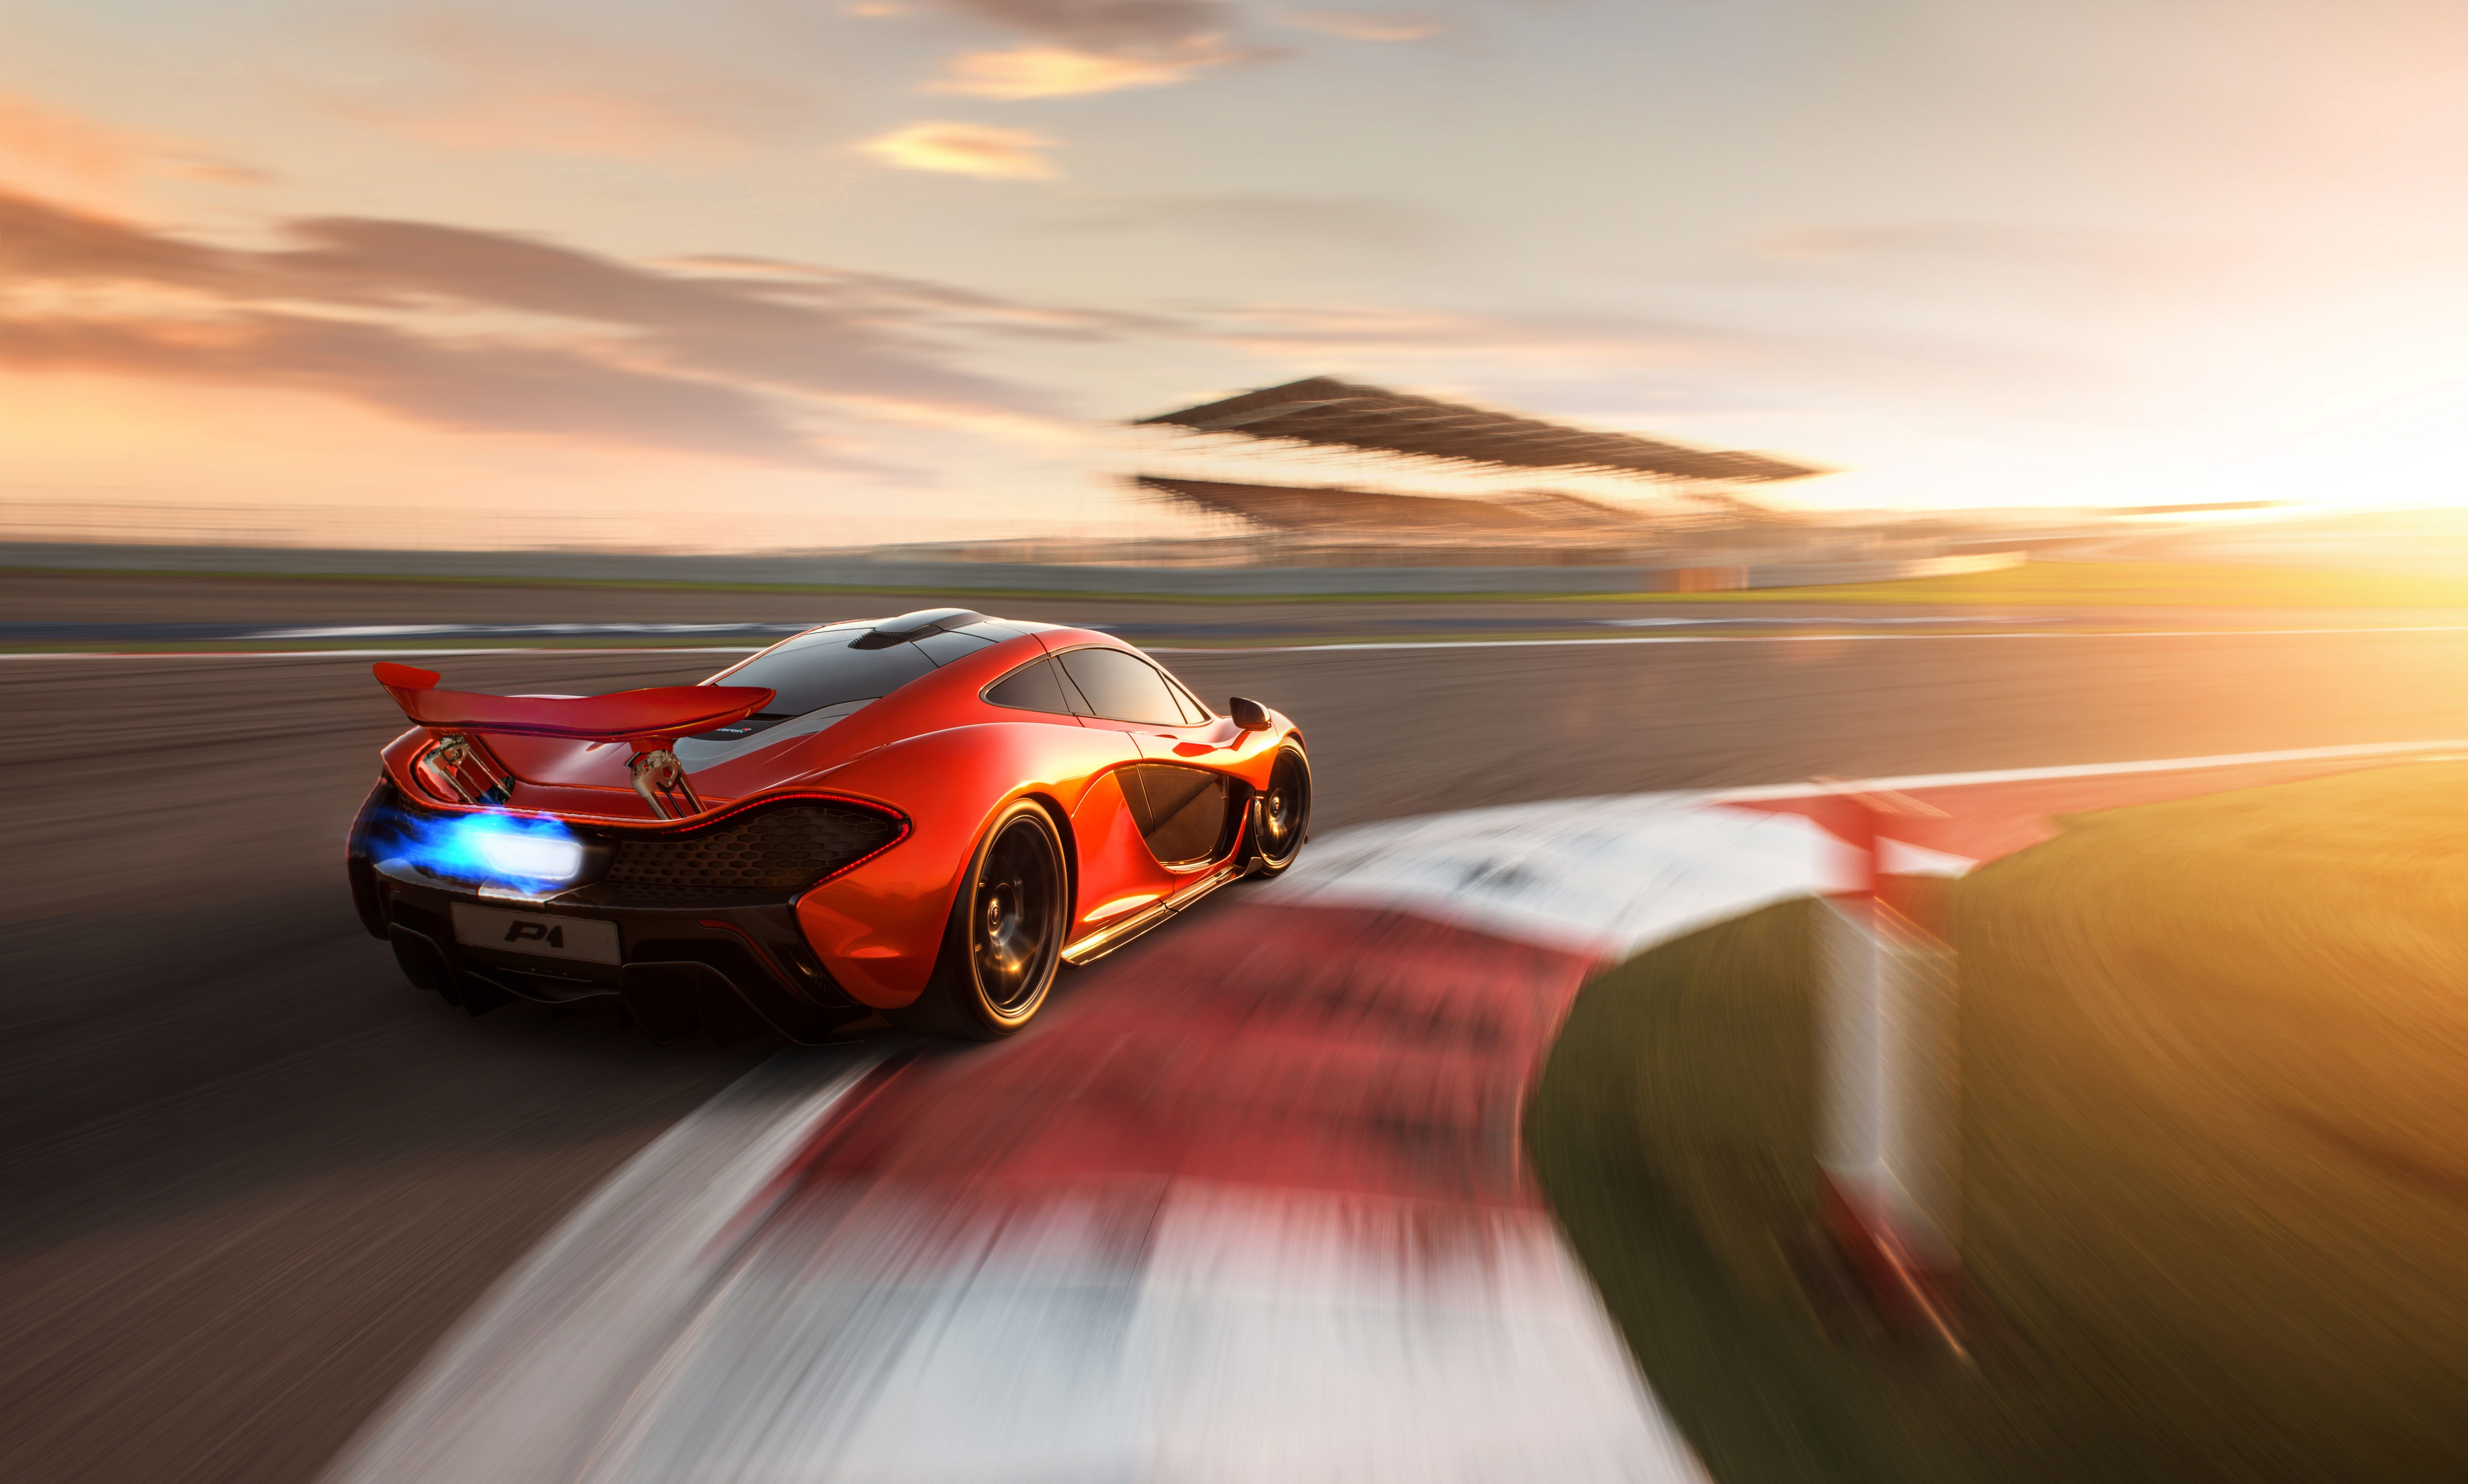 Mclaren P1 On Track 8k Hd Cars 4k Wallpapers Images